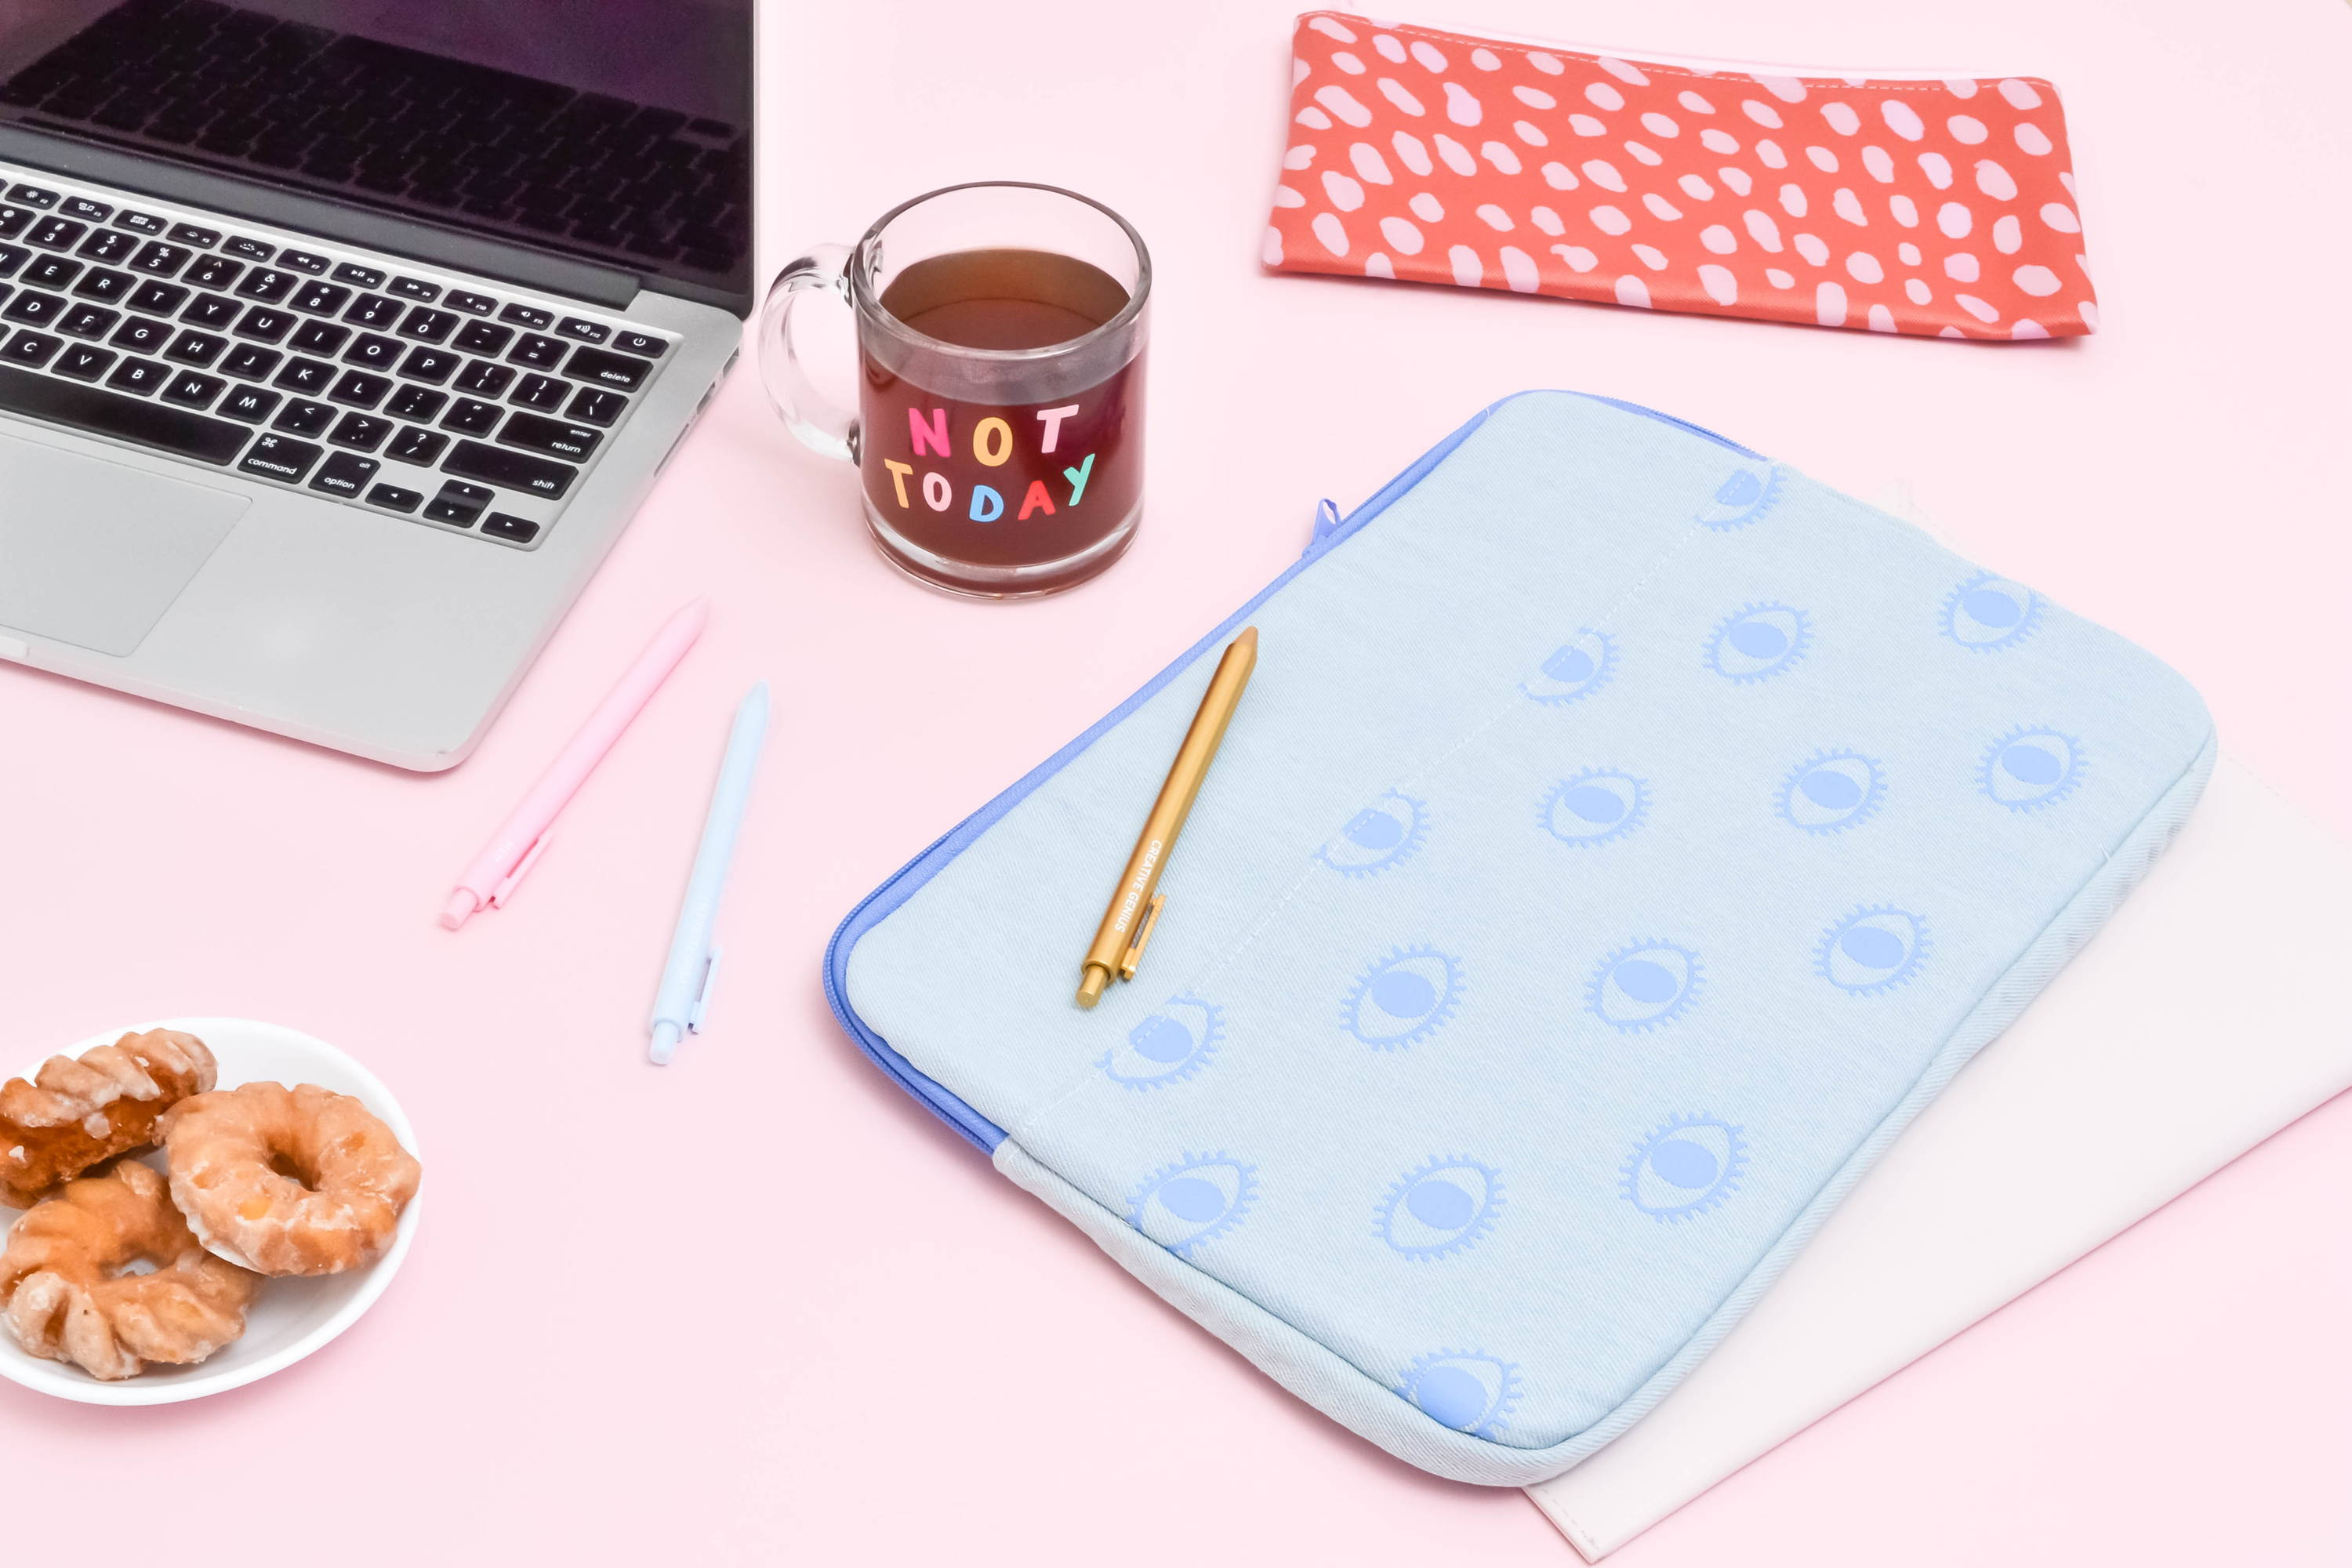 cute lifestyle image of a laptop, donuts, blue canvas laptop sleeve with eyeballs, a red vegan leather pouch, and a clear glass mug that says not today in rainbow letters